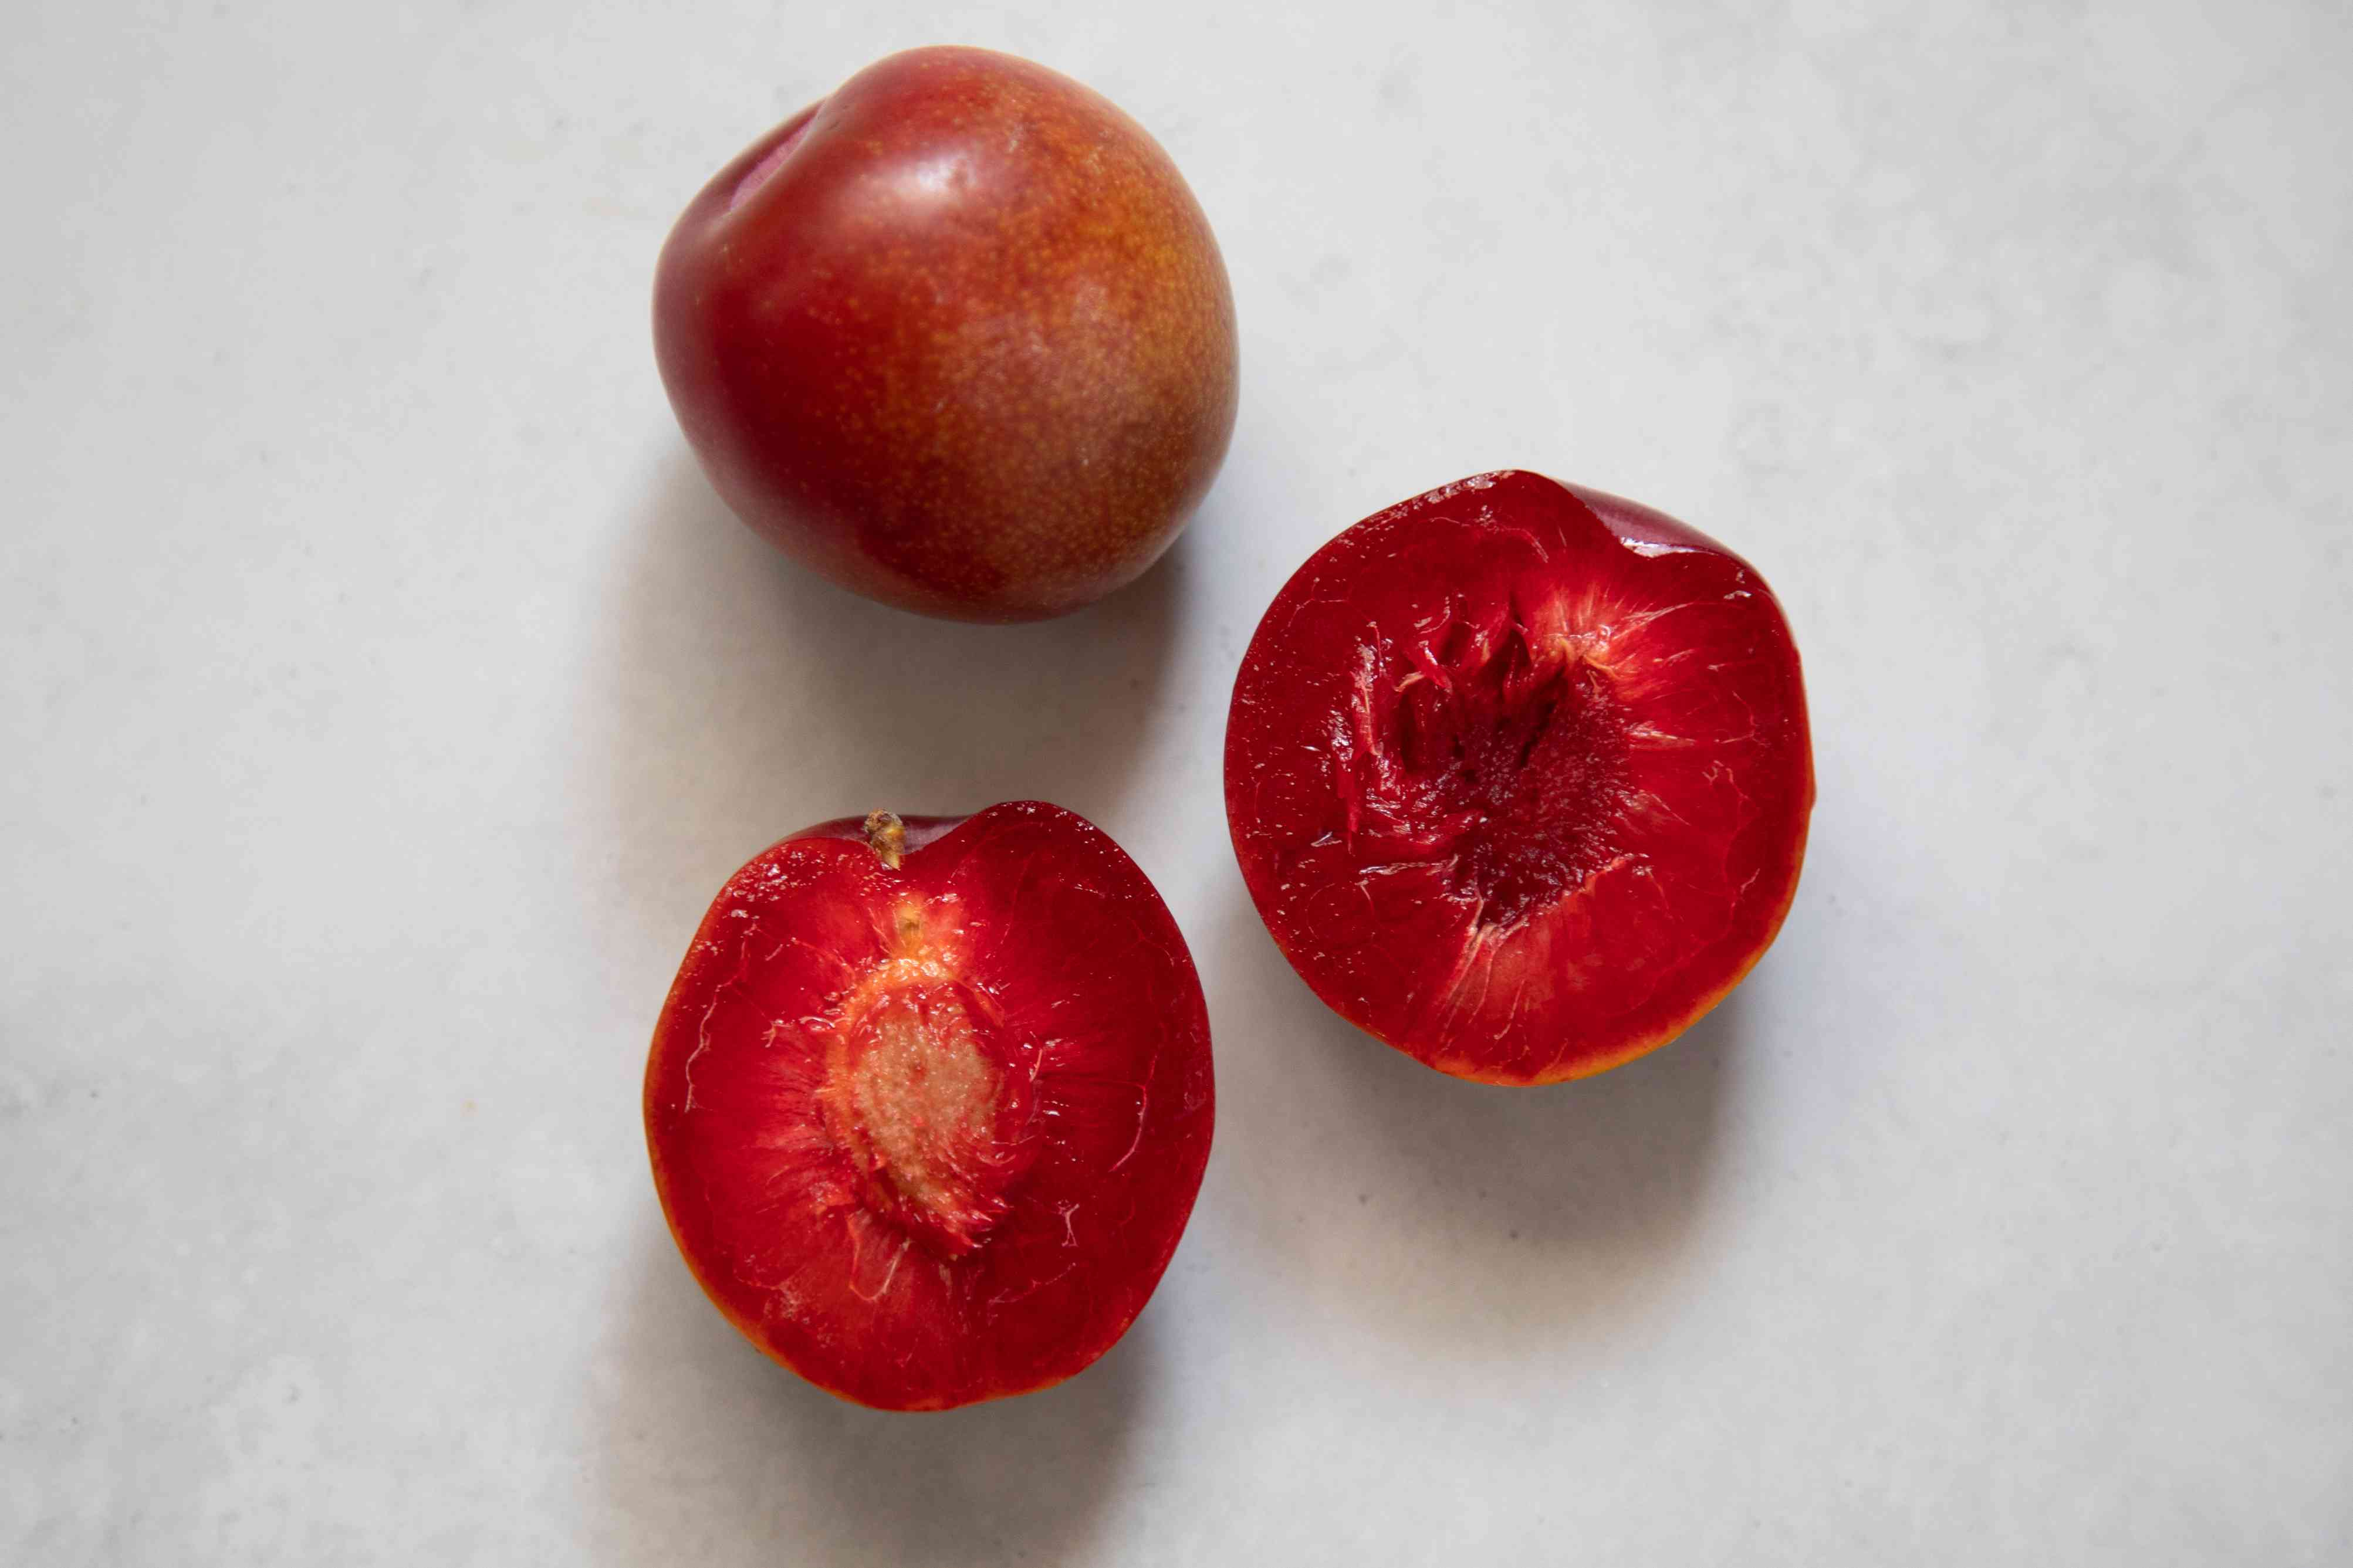 Opened plum showing pit